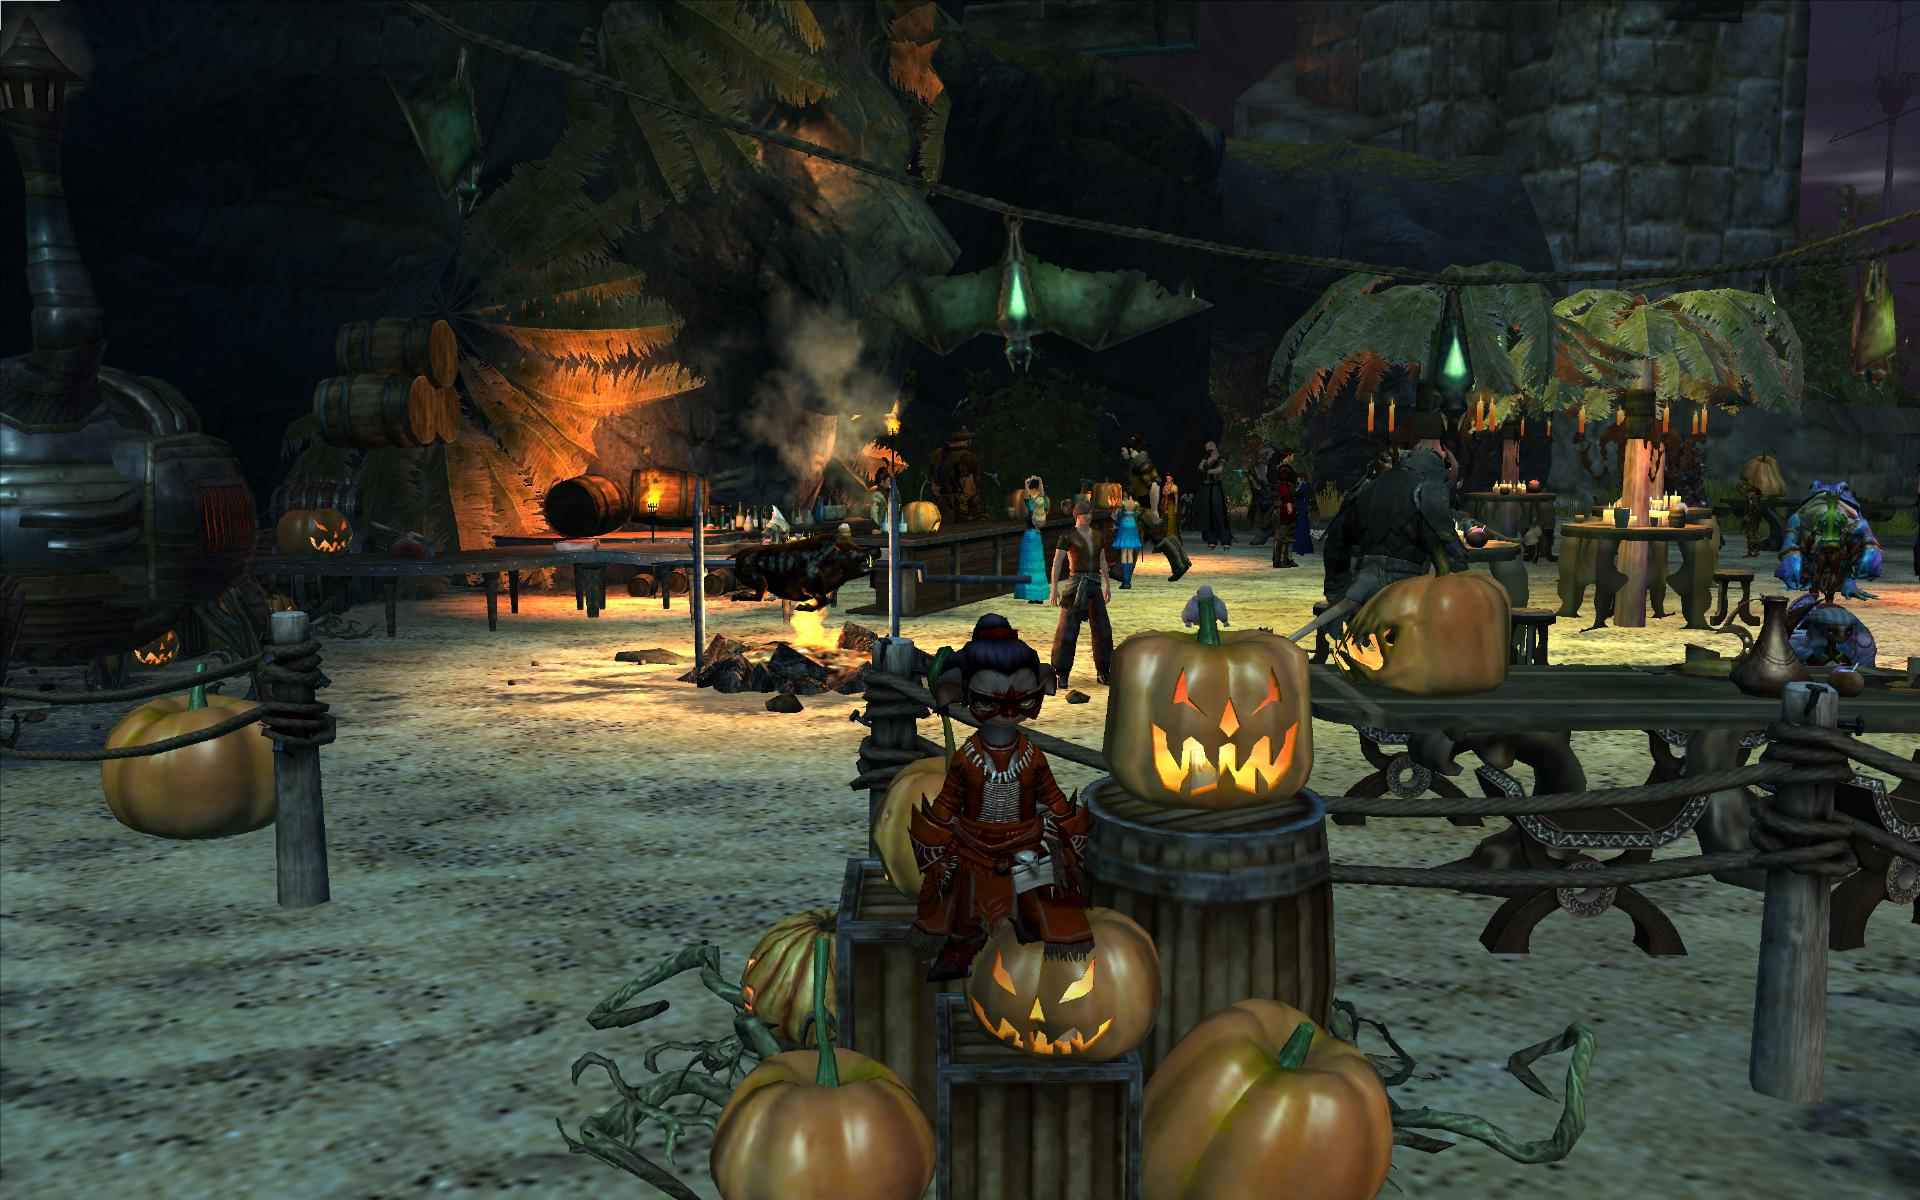 Guild Wars 2 Halloween Festivities - The Average Gamer